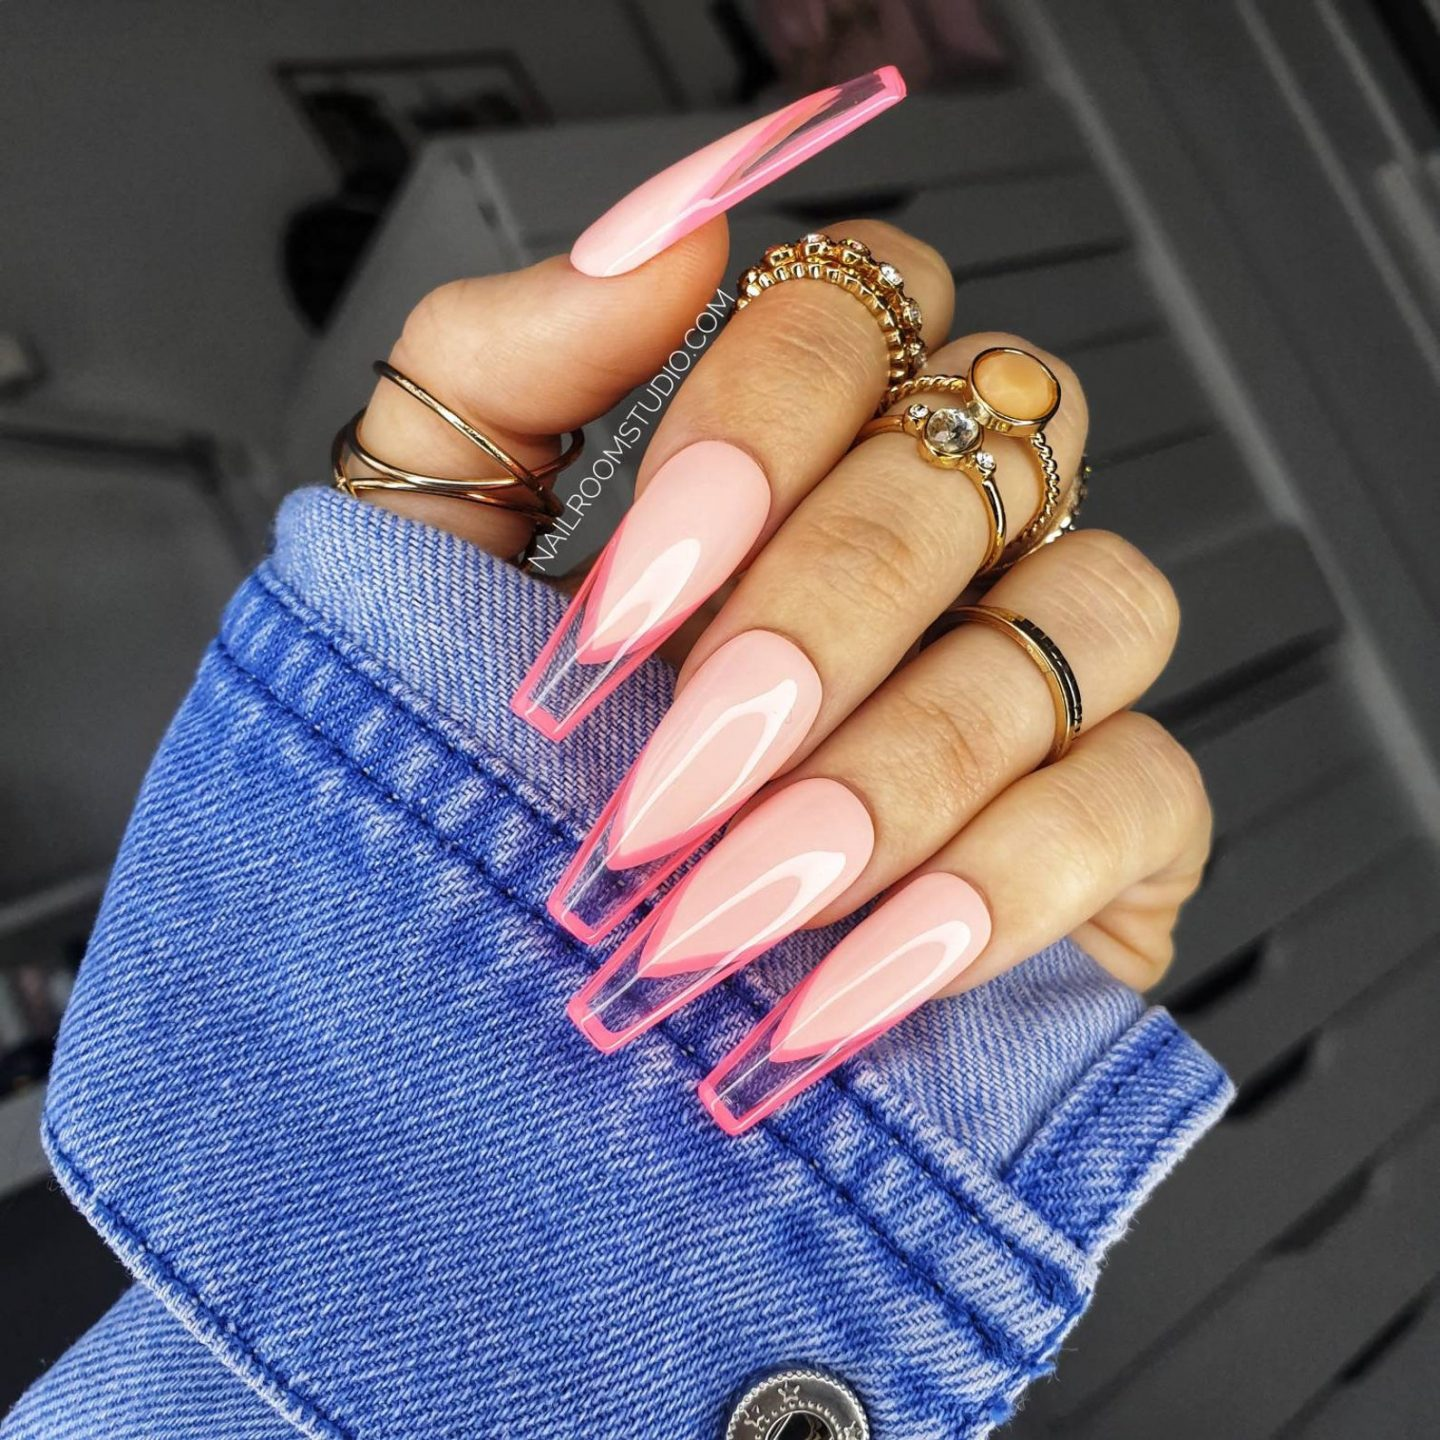 Neon pink French tip nails